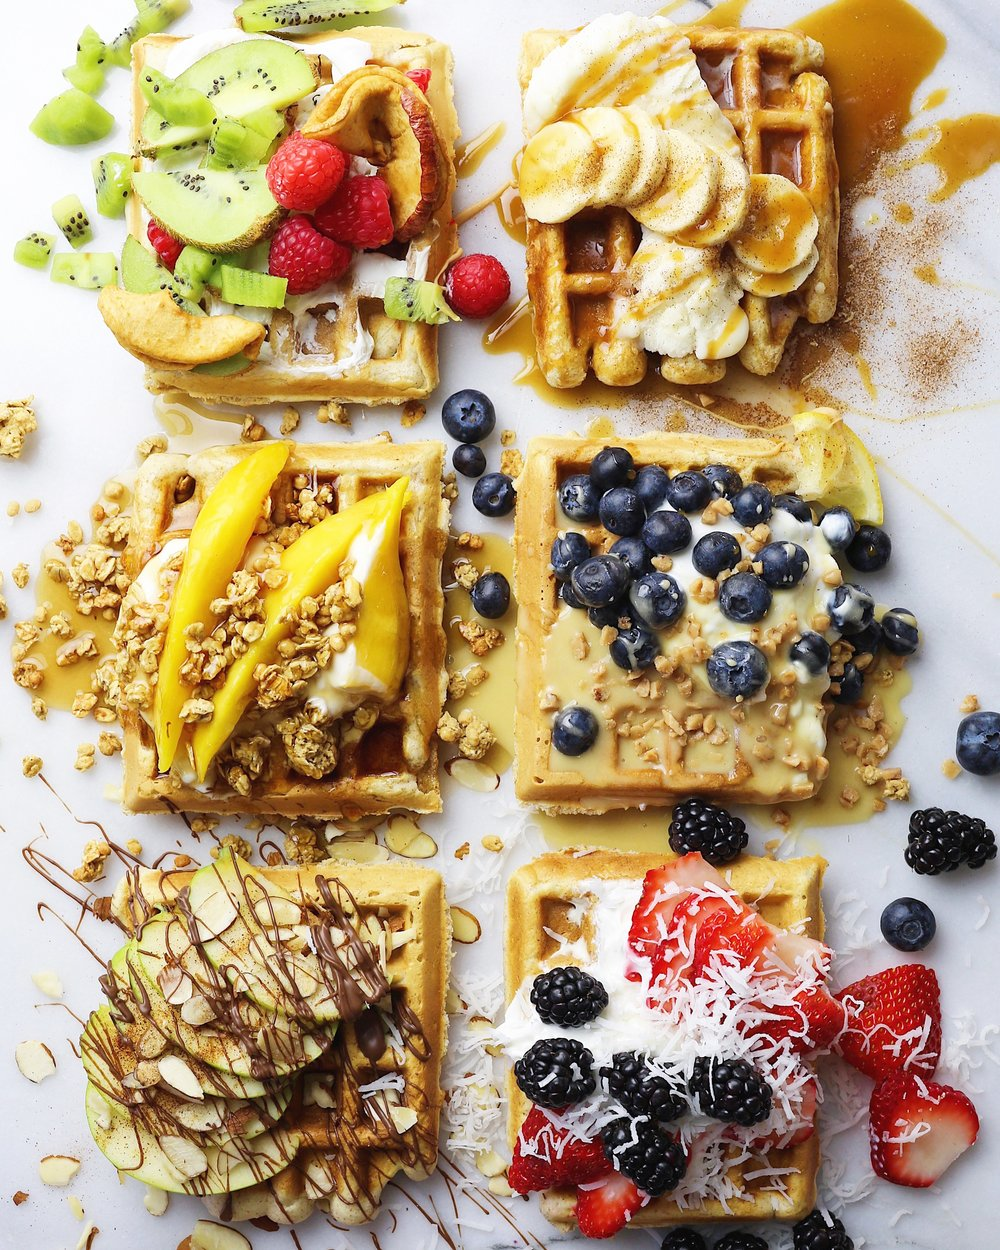 Waffles 6 Toppings.JPG